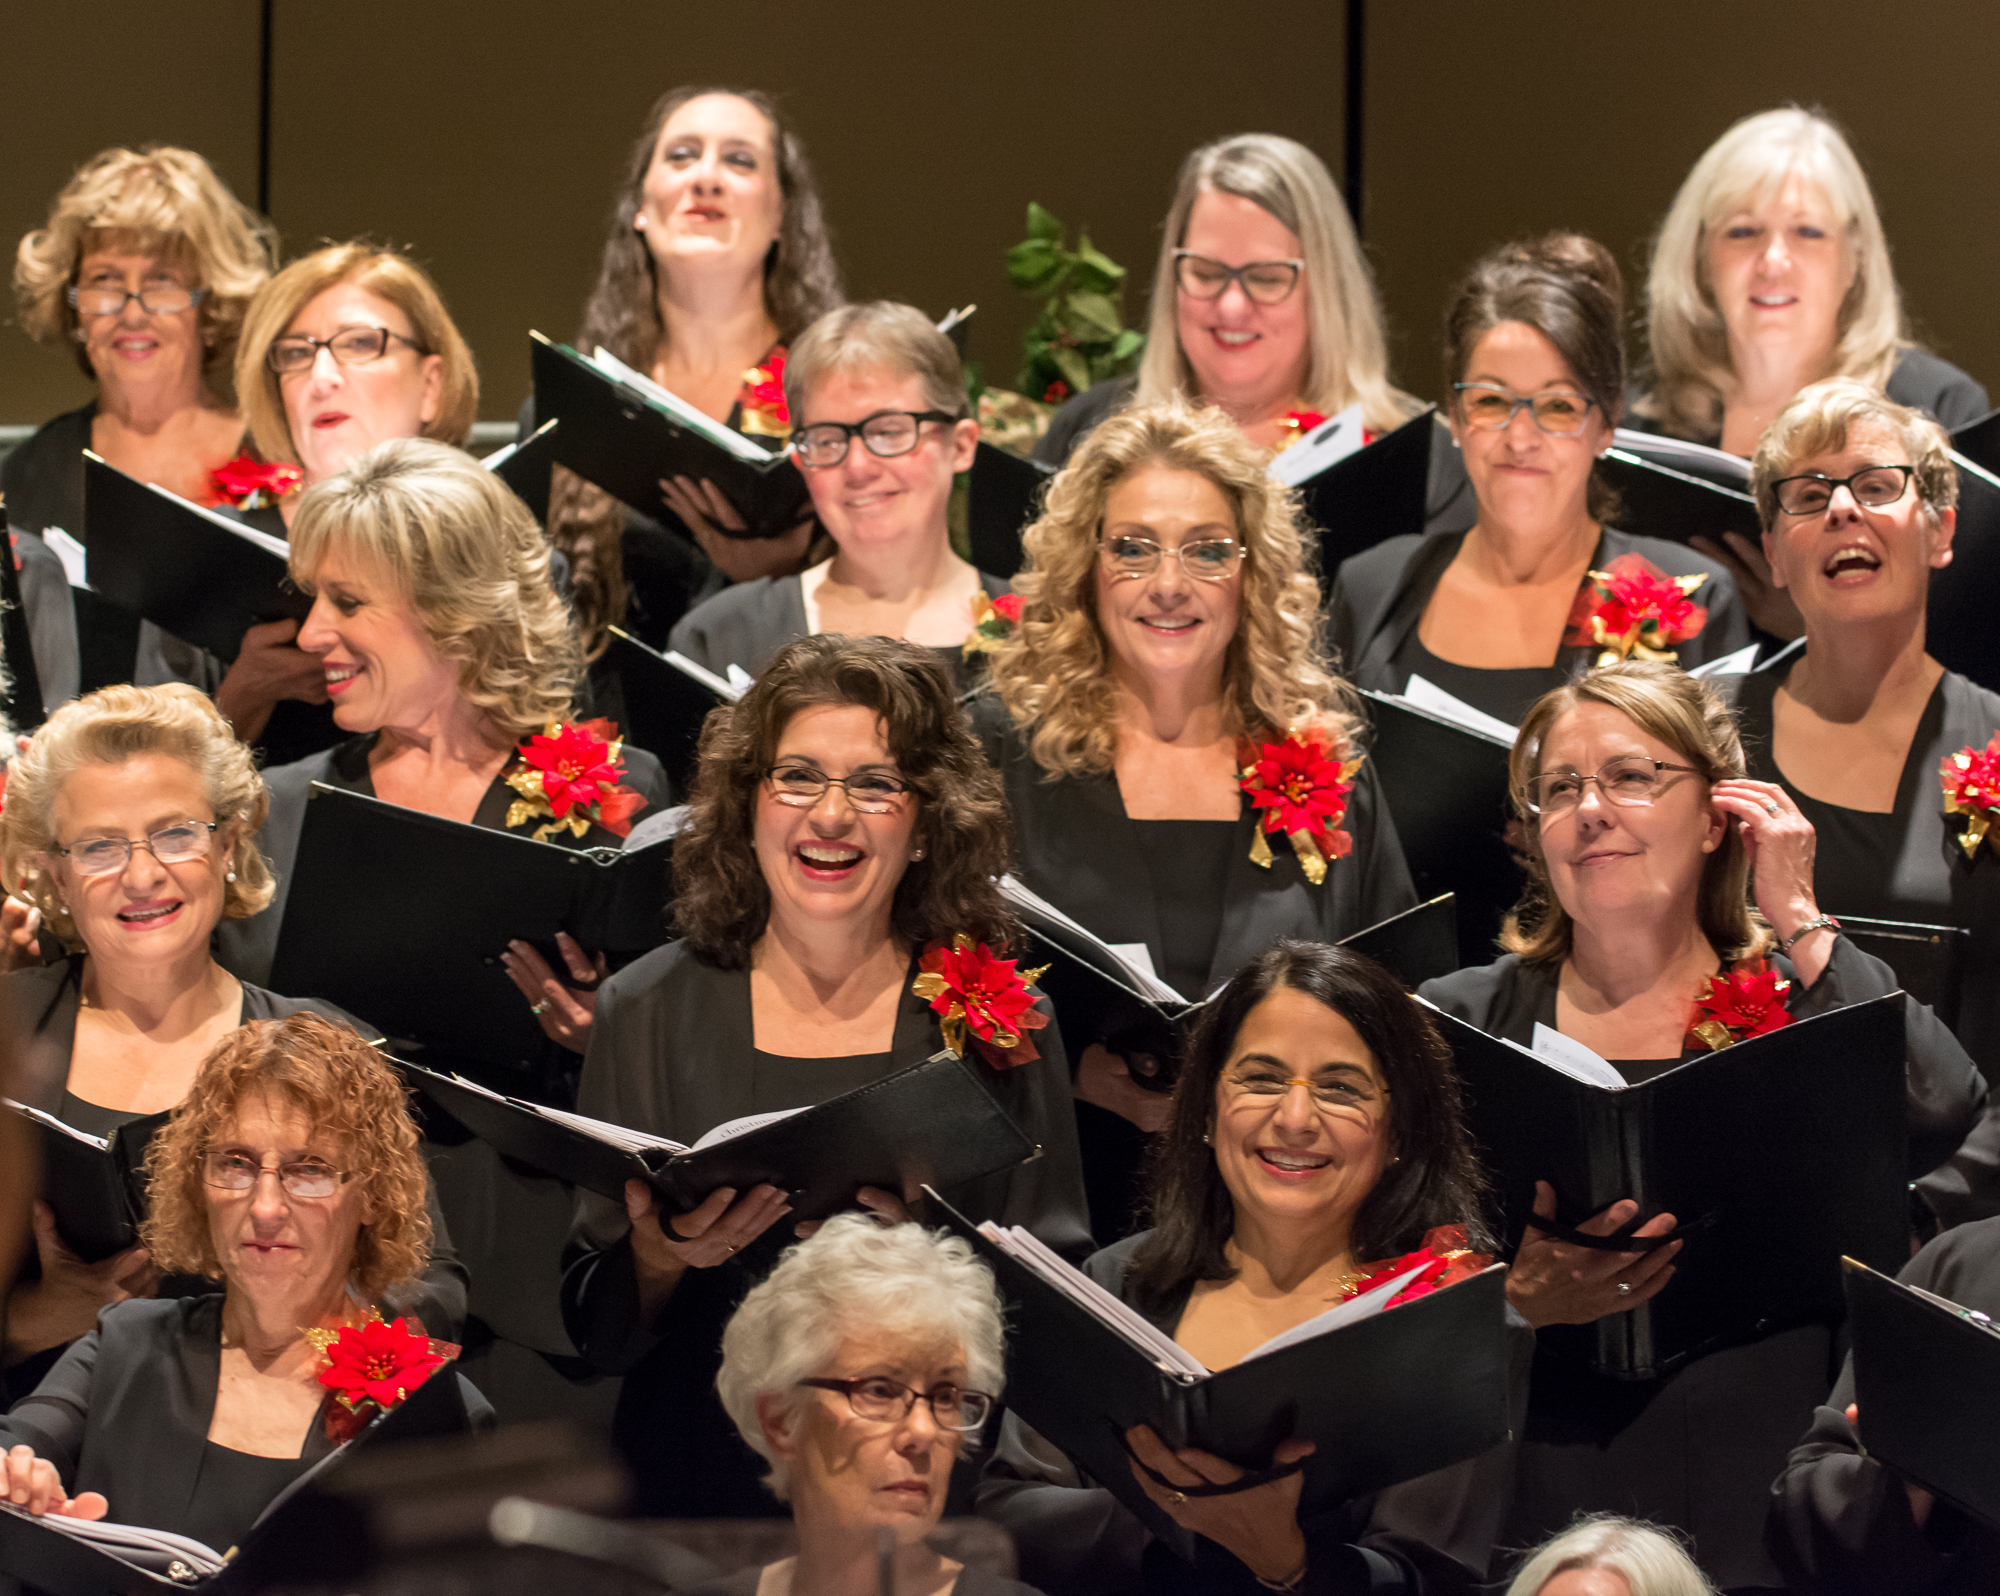 Holiday Pops! - Friday, December 6, 2019 - 7:30 pm*Gallo Center For the ArtsRyan Murray, conductorTickets Starting at $19